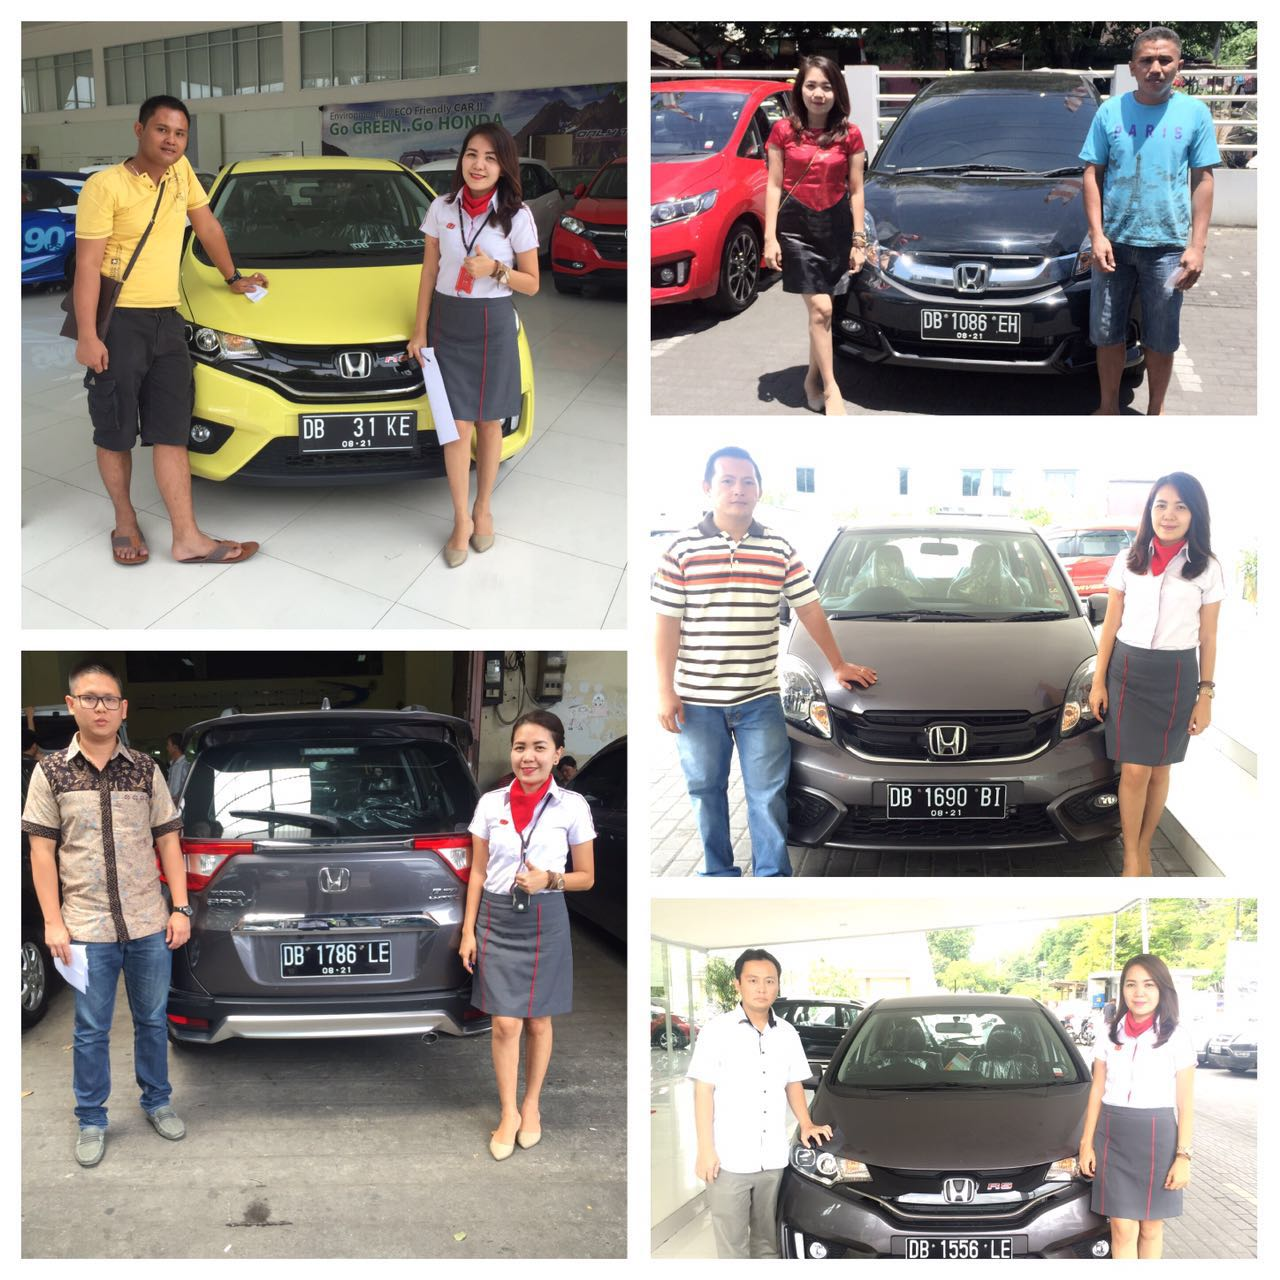 foto-penyerahan-unit-1-sales-marketing-mobil-dealer-honda-manado-diona-pangkey